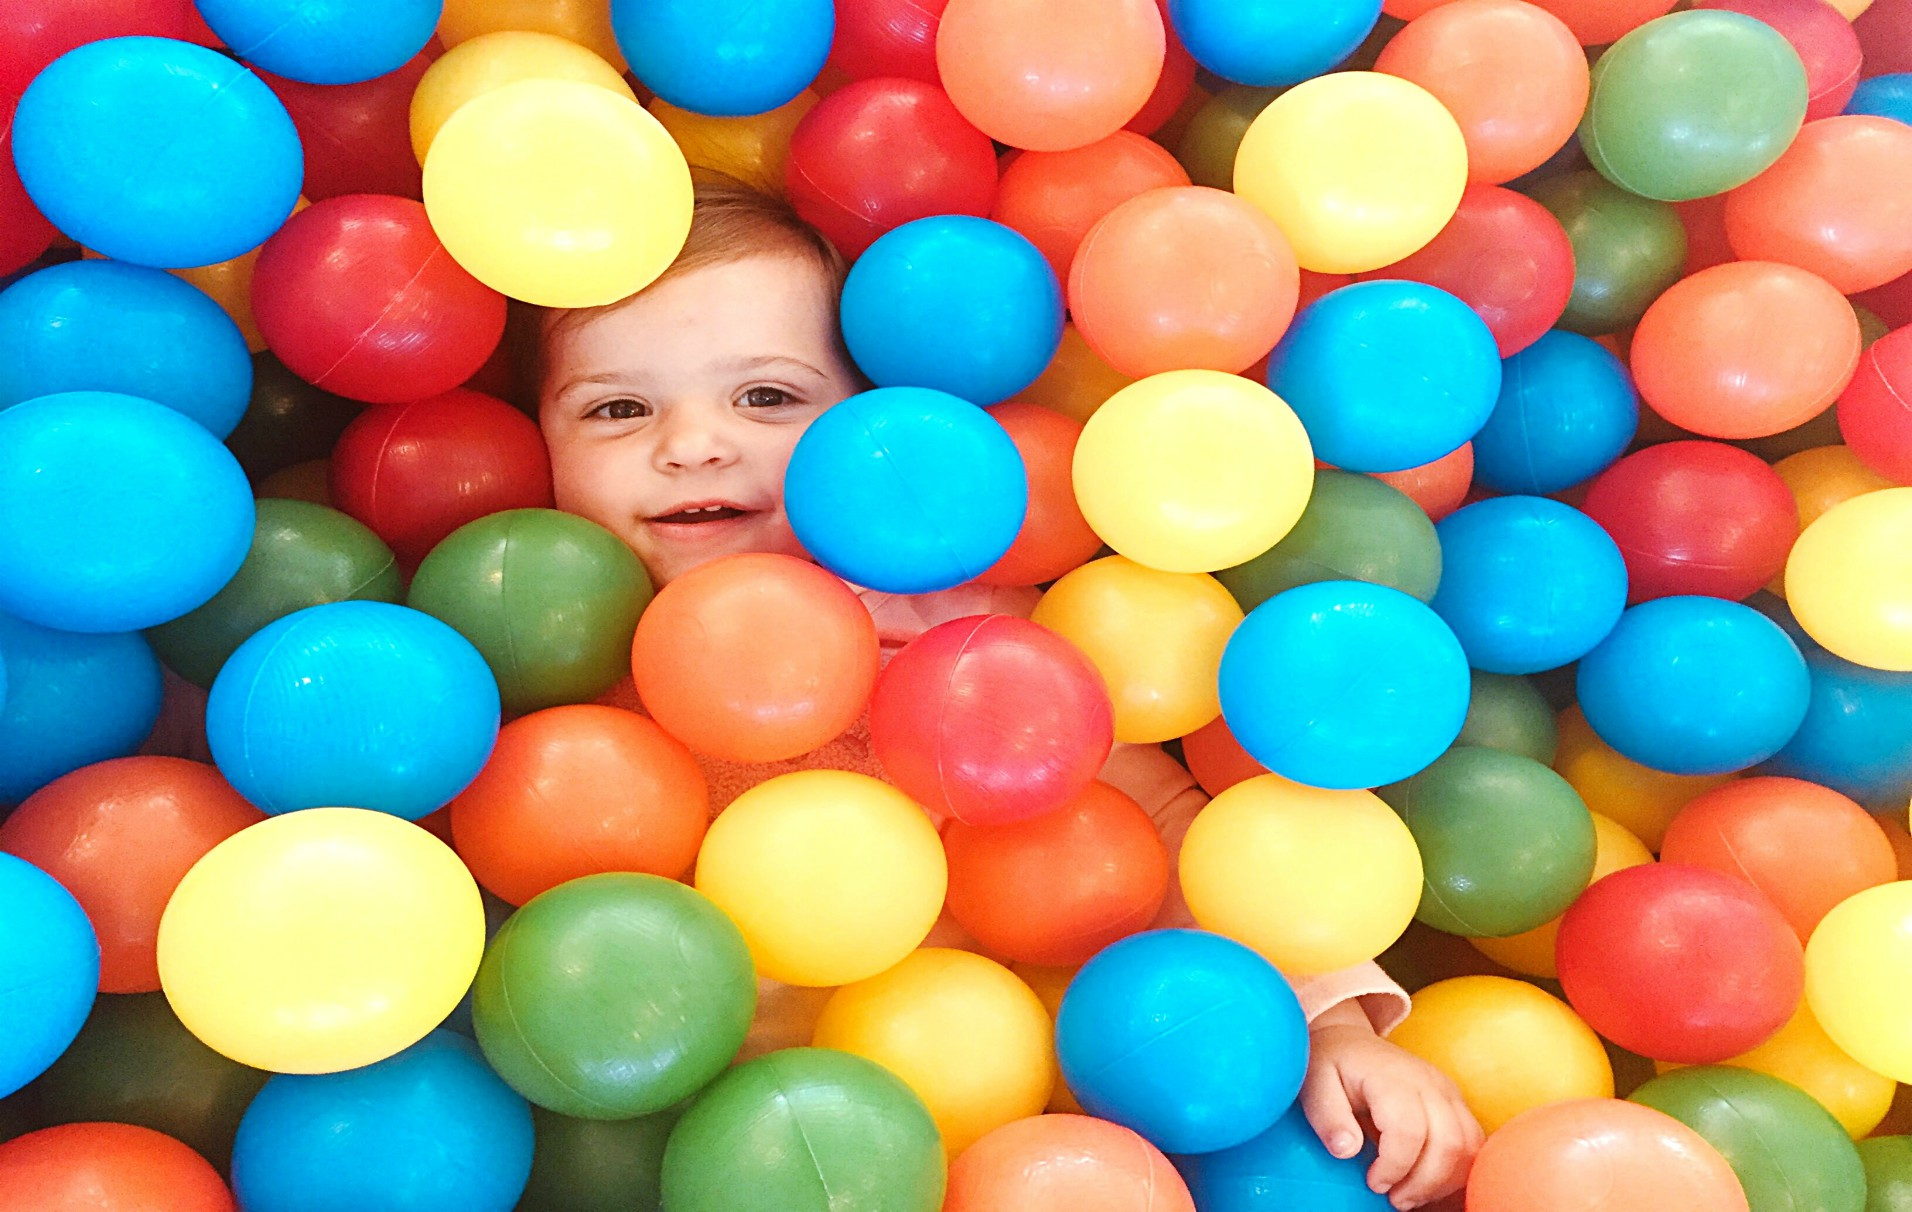 Filthy ball pits dangerous